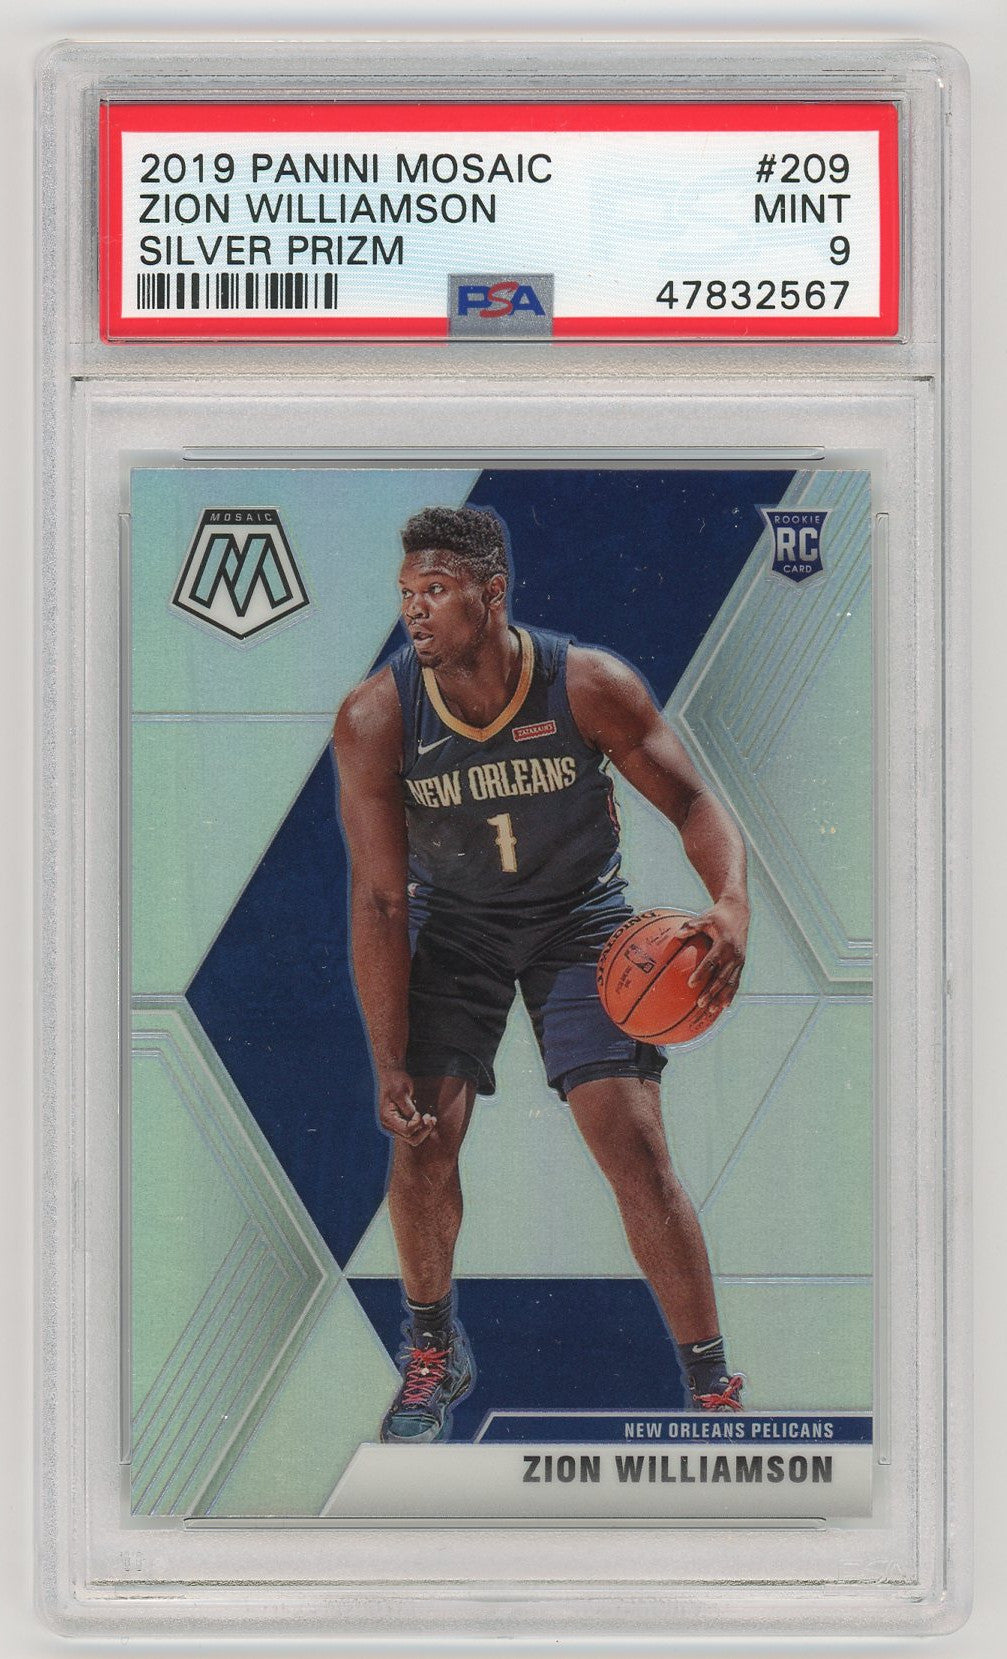 Zion Williamson New Orleans Pelicans 2019 Mosaic Silver Prizm Basketball Rookie Card RC #209 Graded PSA 9 MINT-Powers Sports Memorabilia